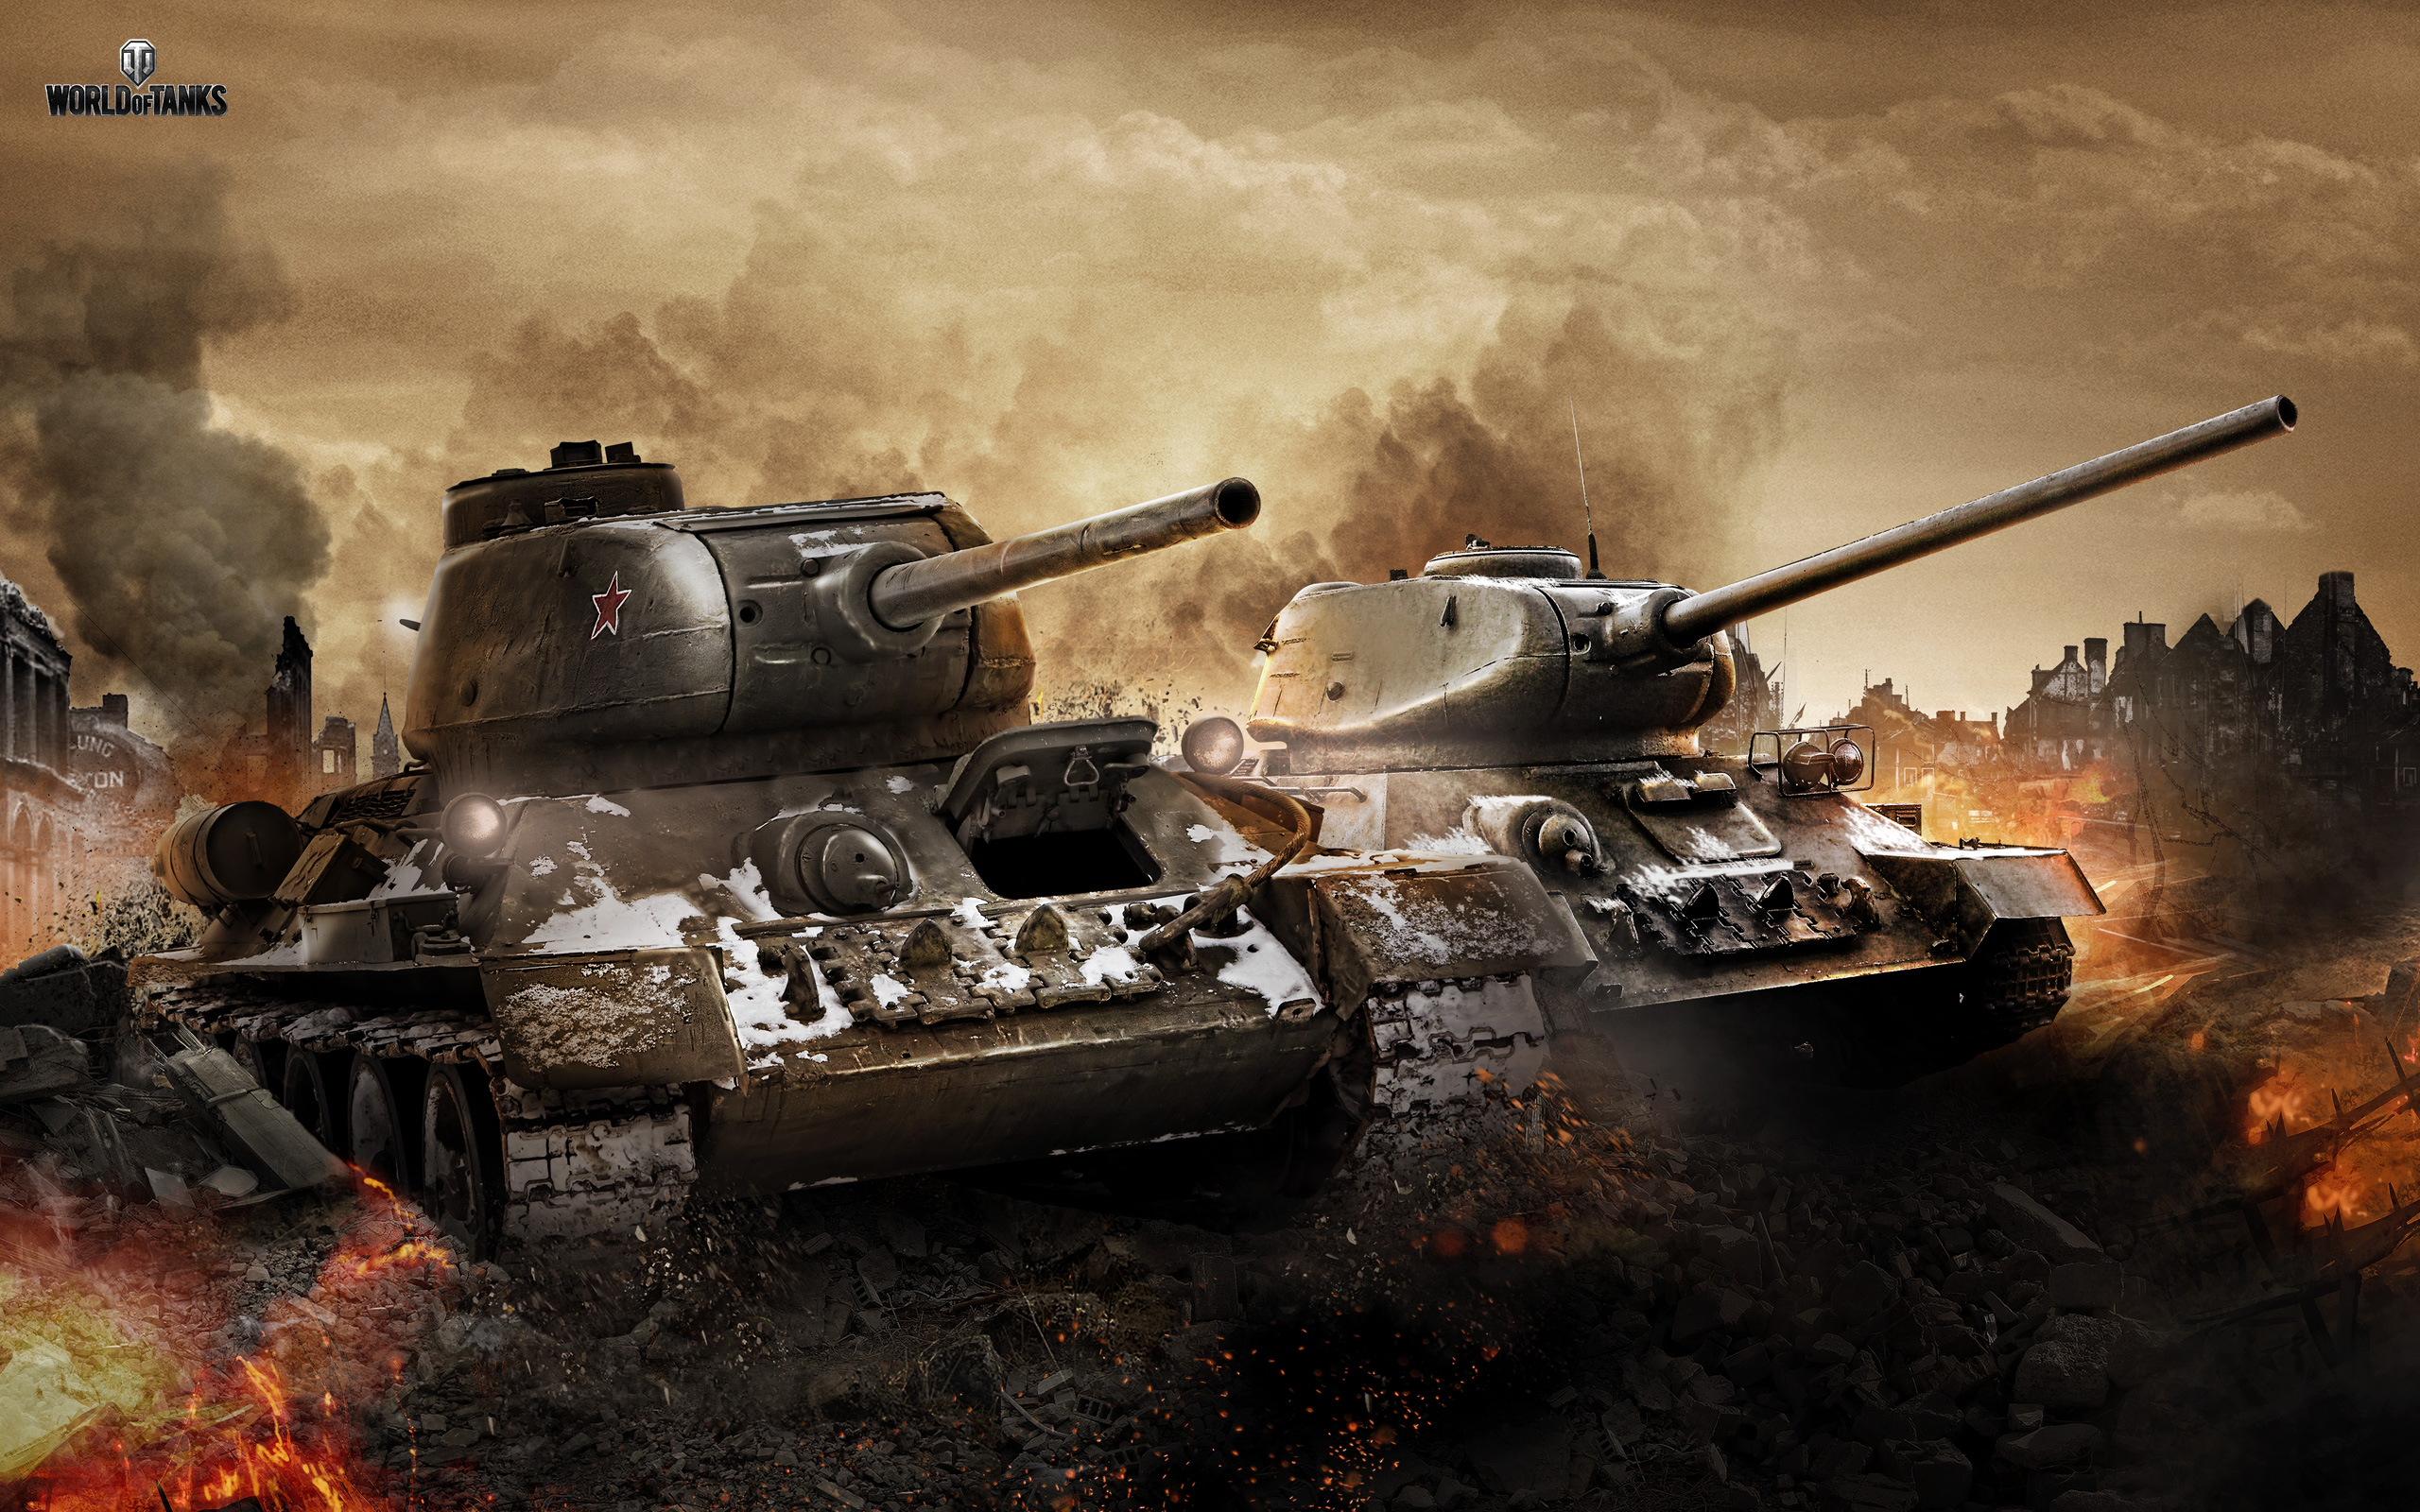 T 34 & T 34 85 in World of Tanks 2278.96 Kb